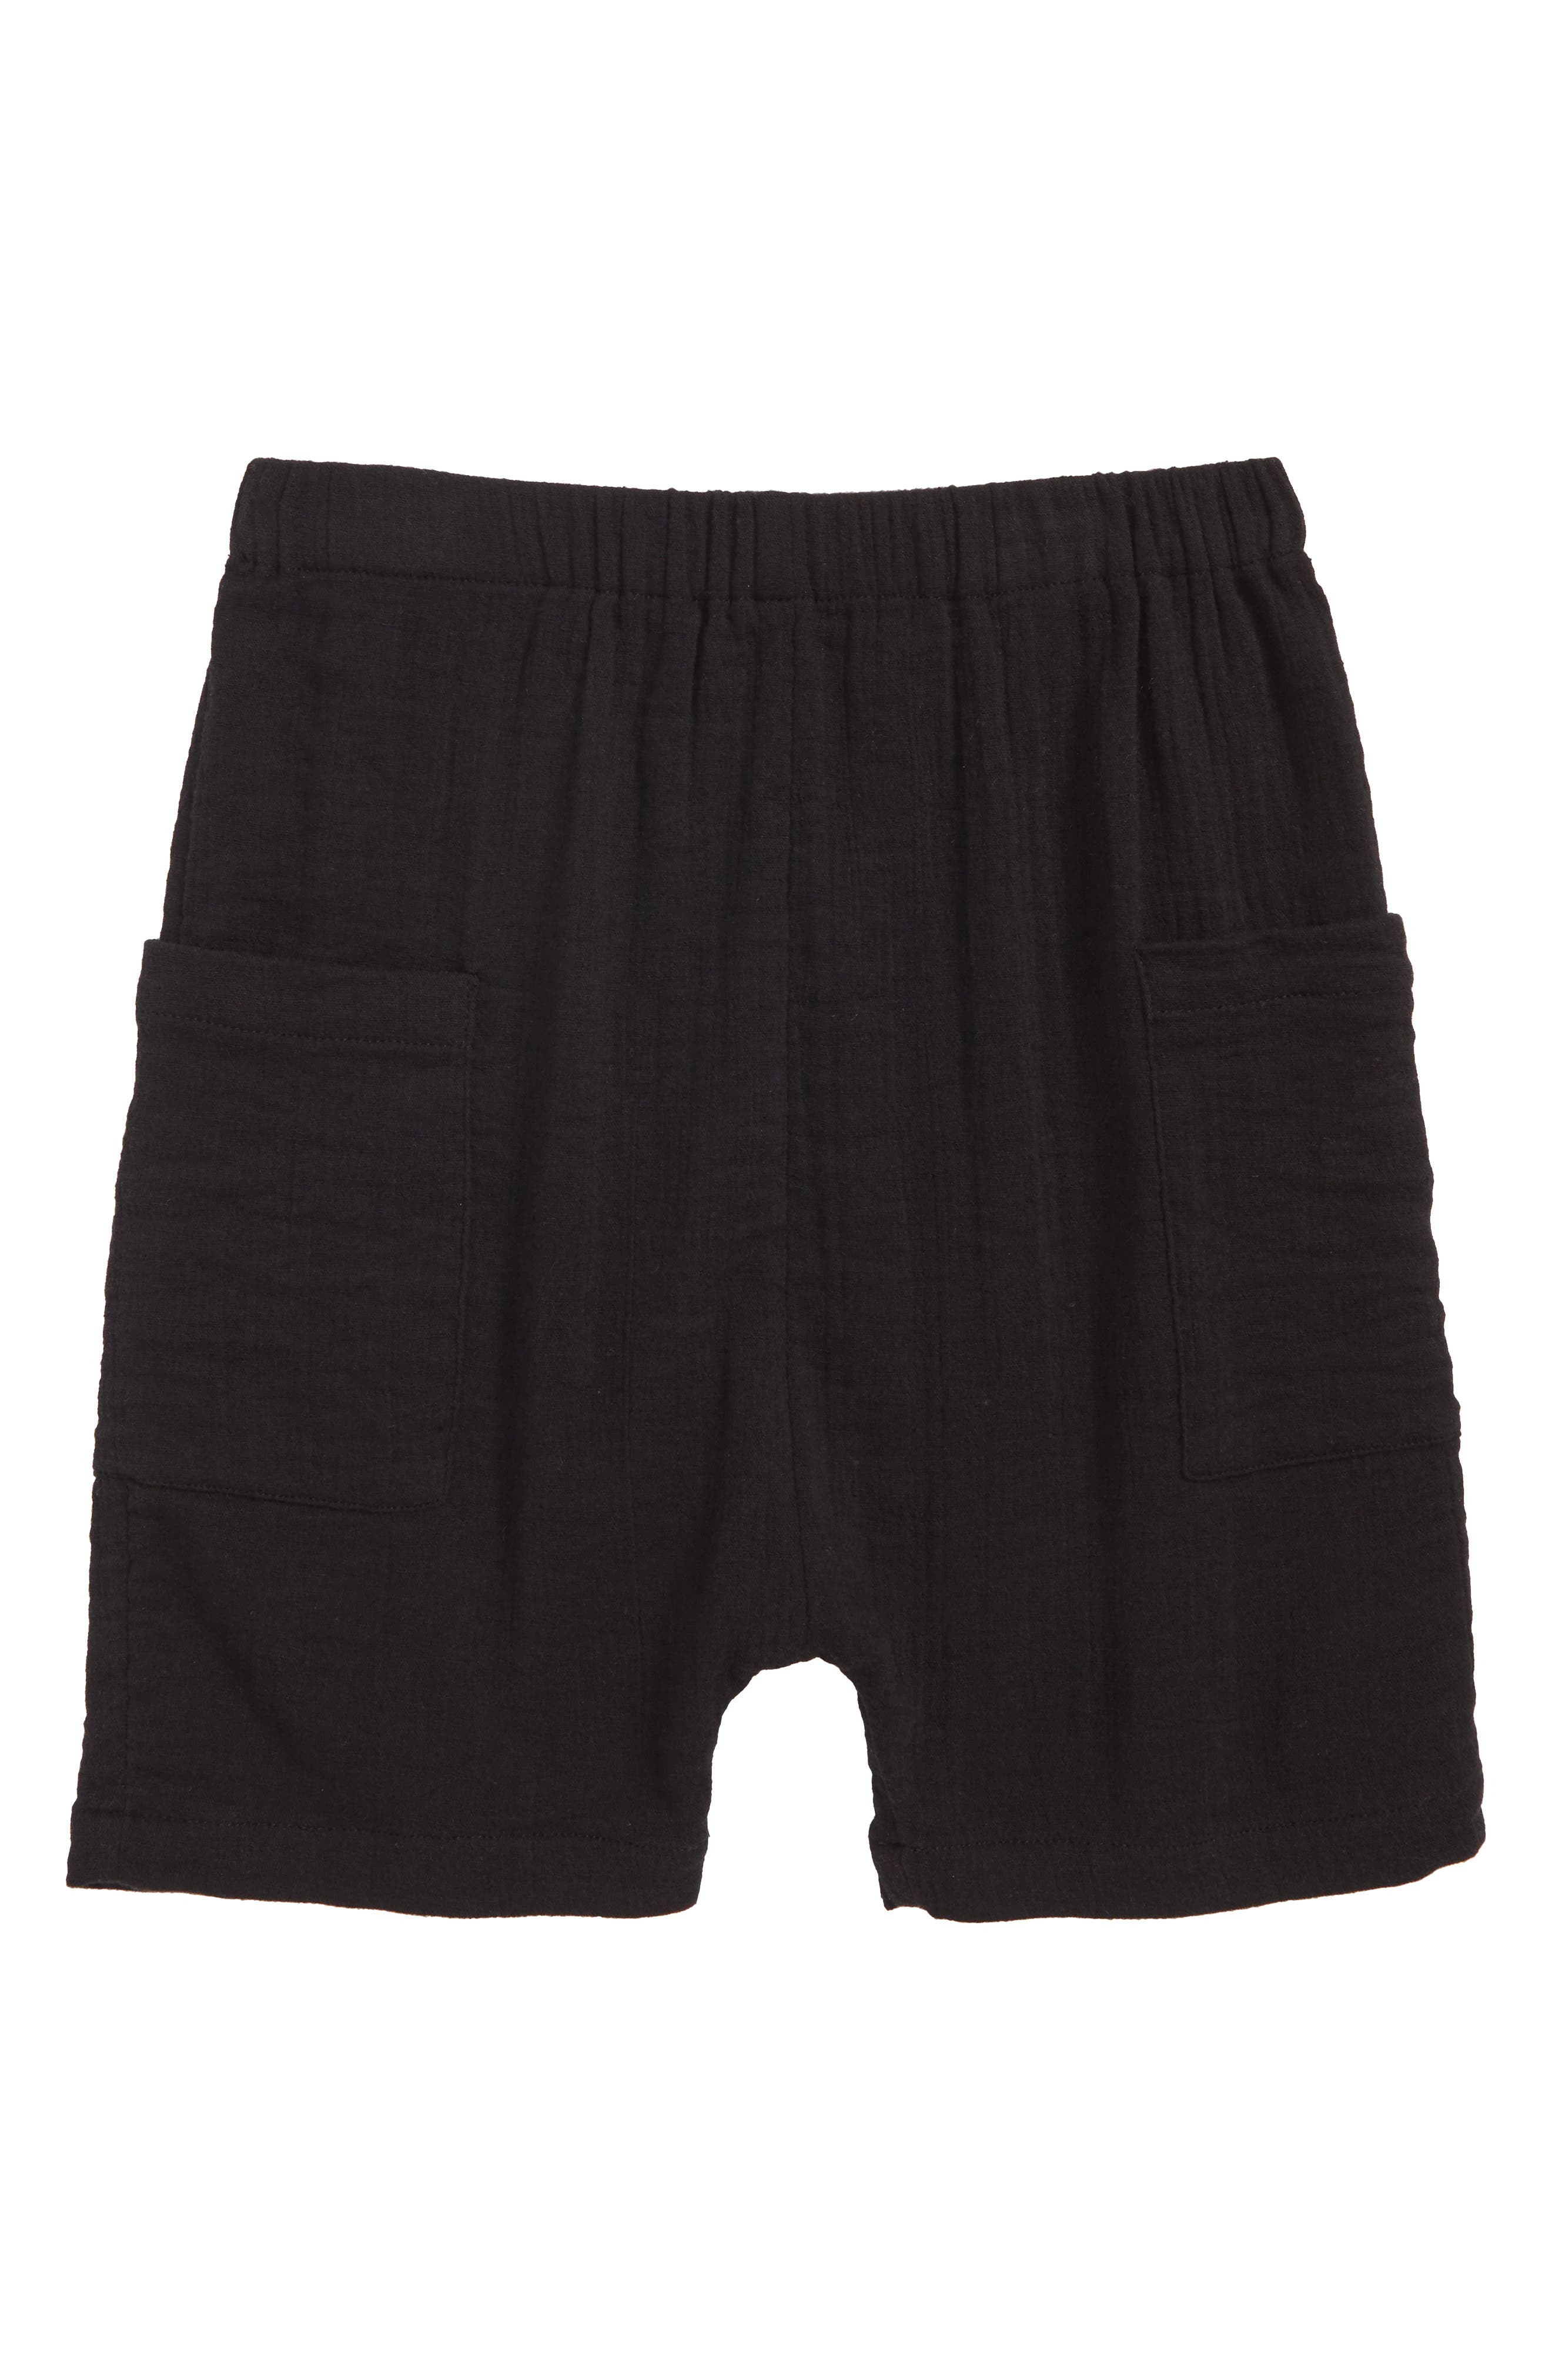 Textured Pocket Shorts,                         Main,                         color, 001